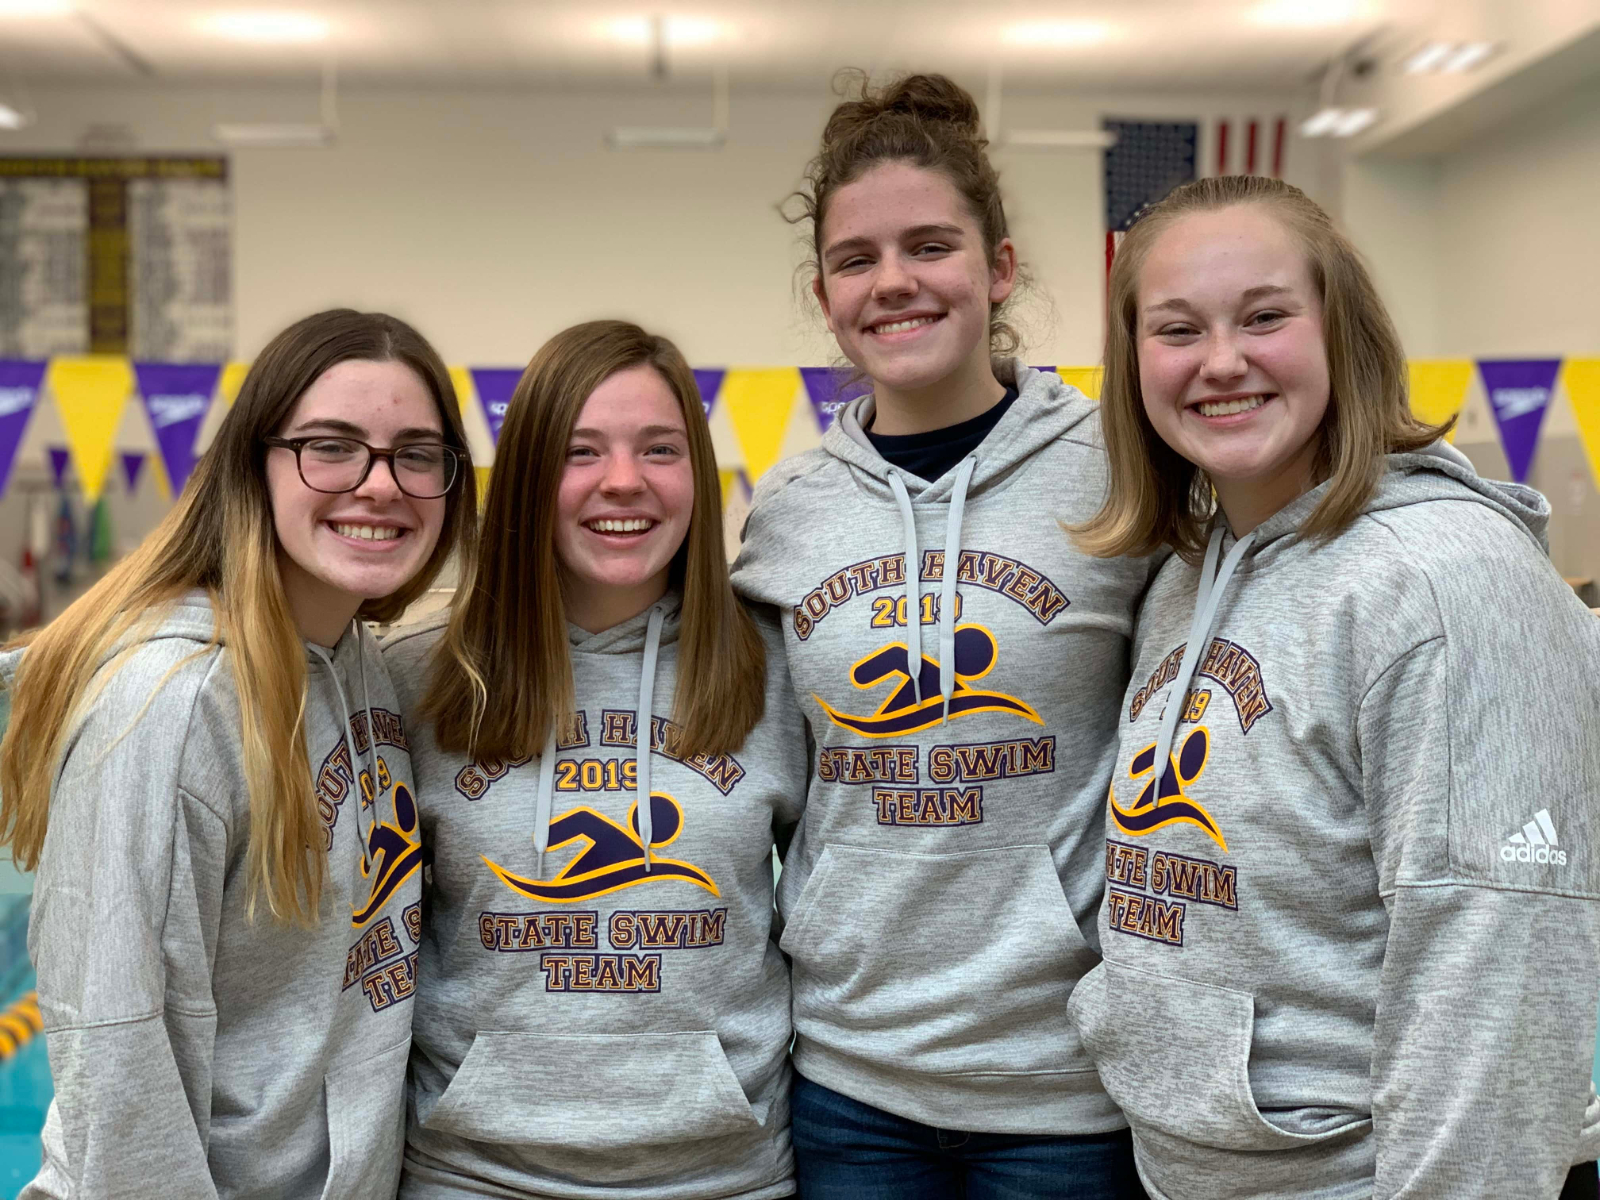 200 Medley Relay Team Recognized as WSJM Student Athlete of the Week!